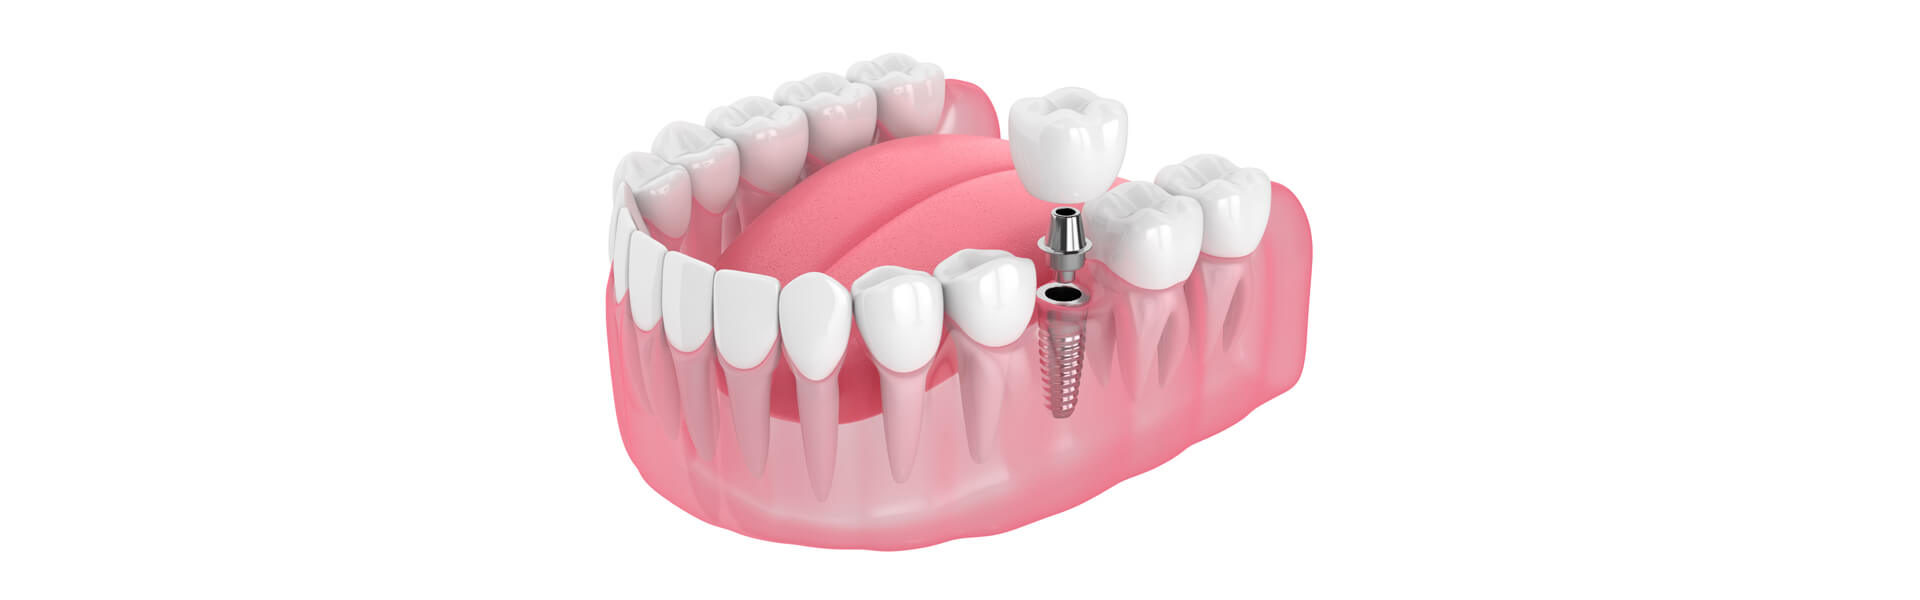 IMPLANTS — THE PERMANENT TOOTH REPLACEMENT SOLUTION